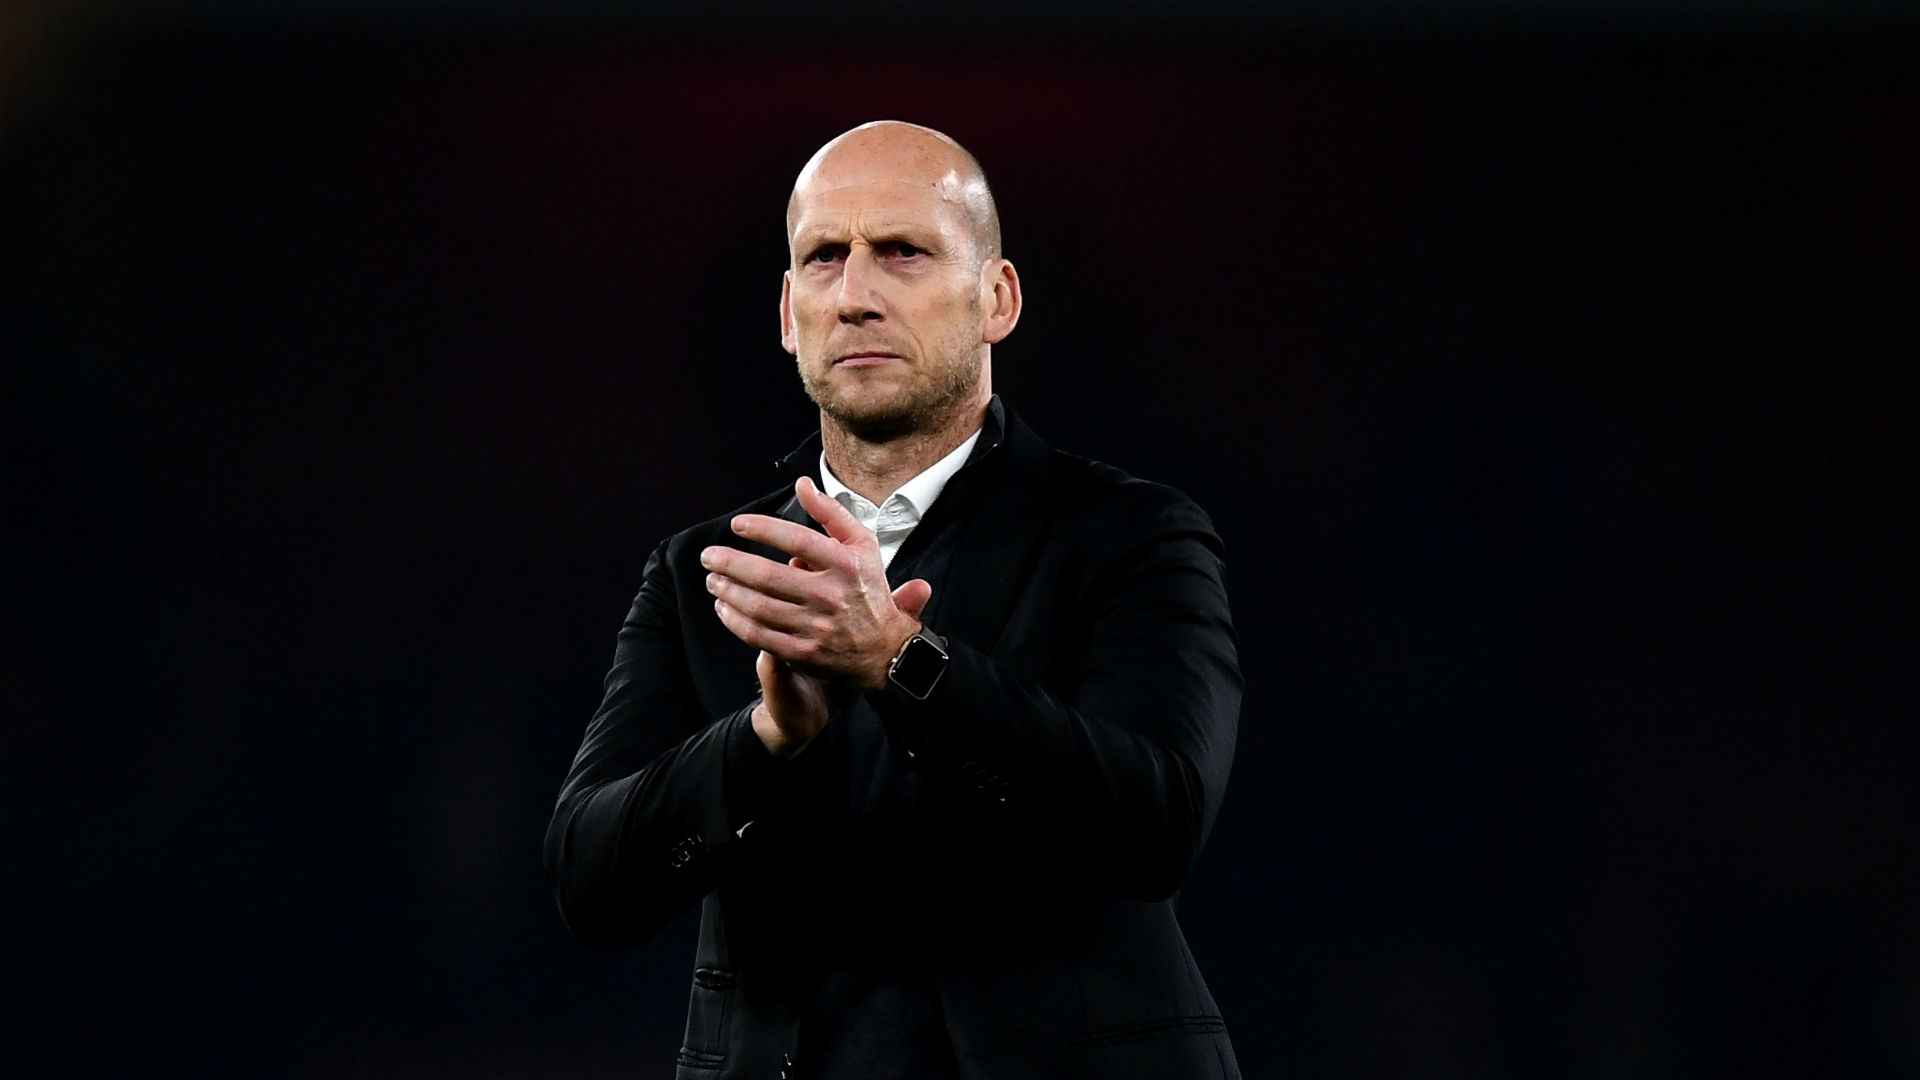 'It wouldn't be a sensible decision to sack him' – Aluko backs Reading's Jaap Stam